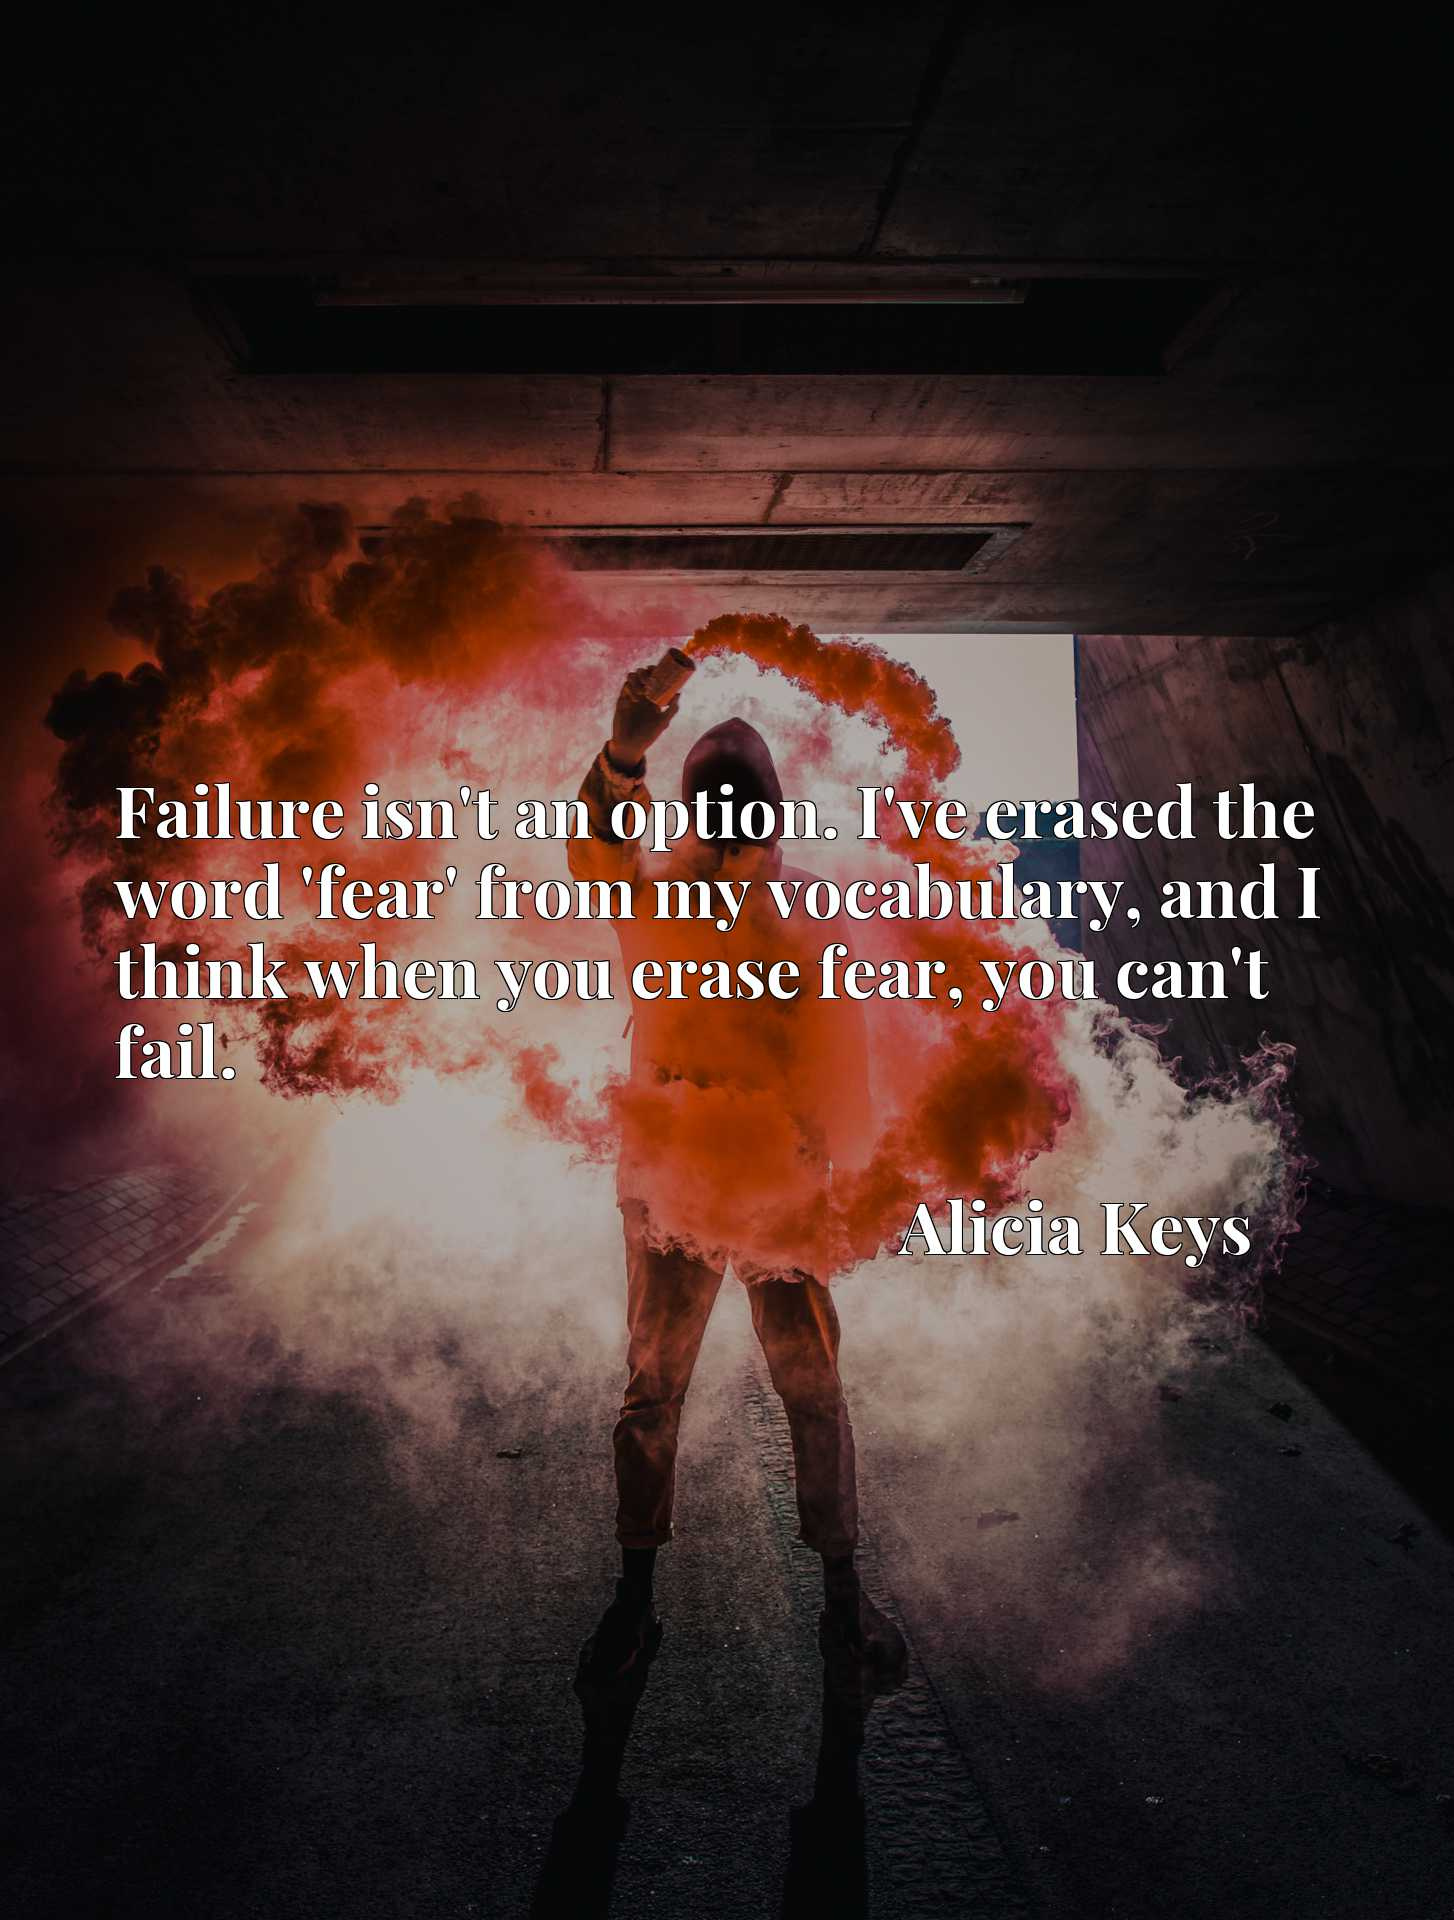 Failure isn't an option. I've erased the word 'fear' from my vocabulary, and I think when you erase fear, you can't fail.